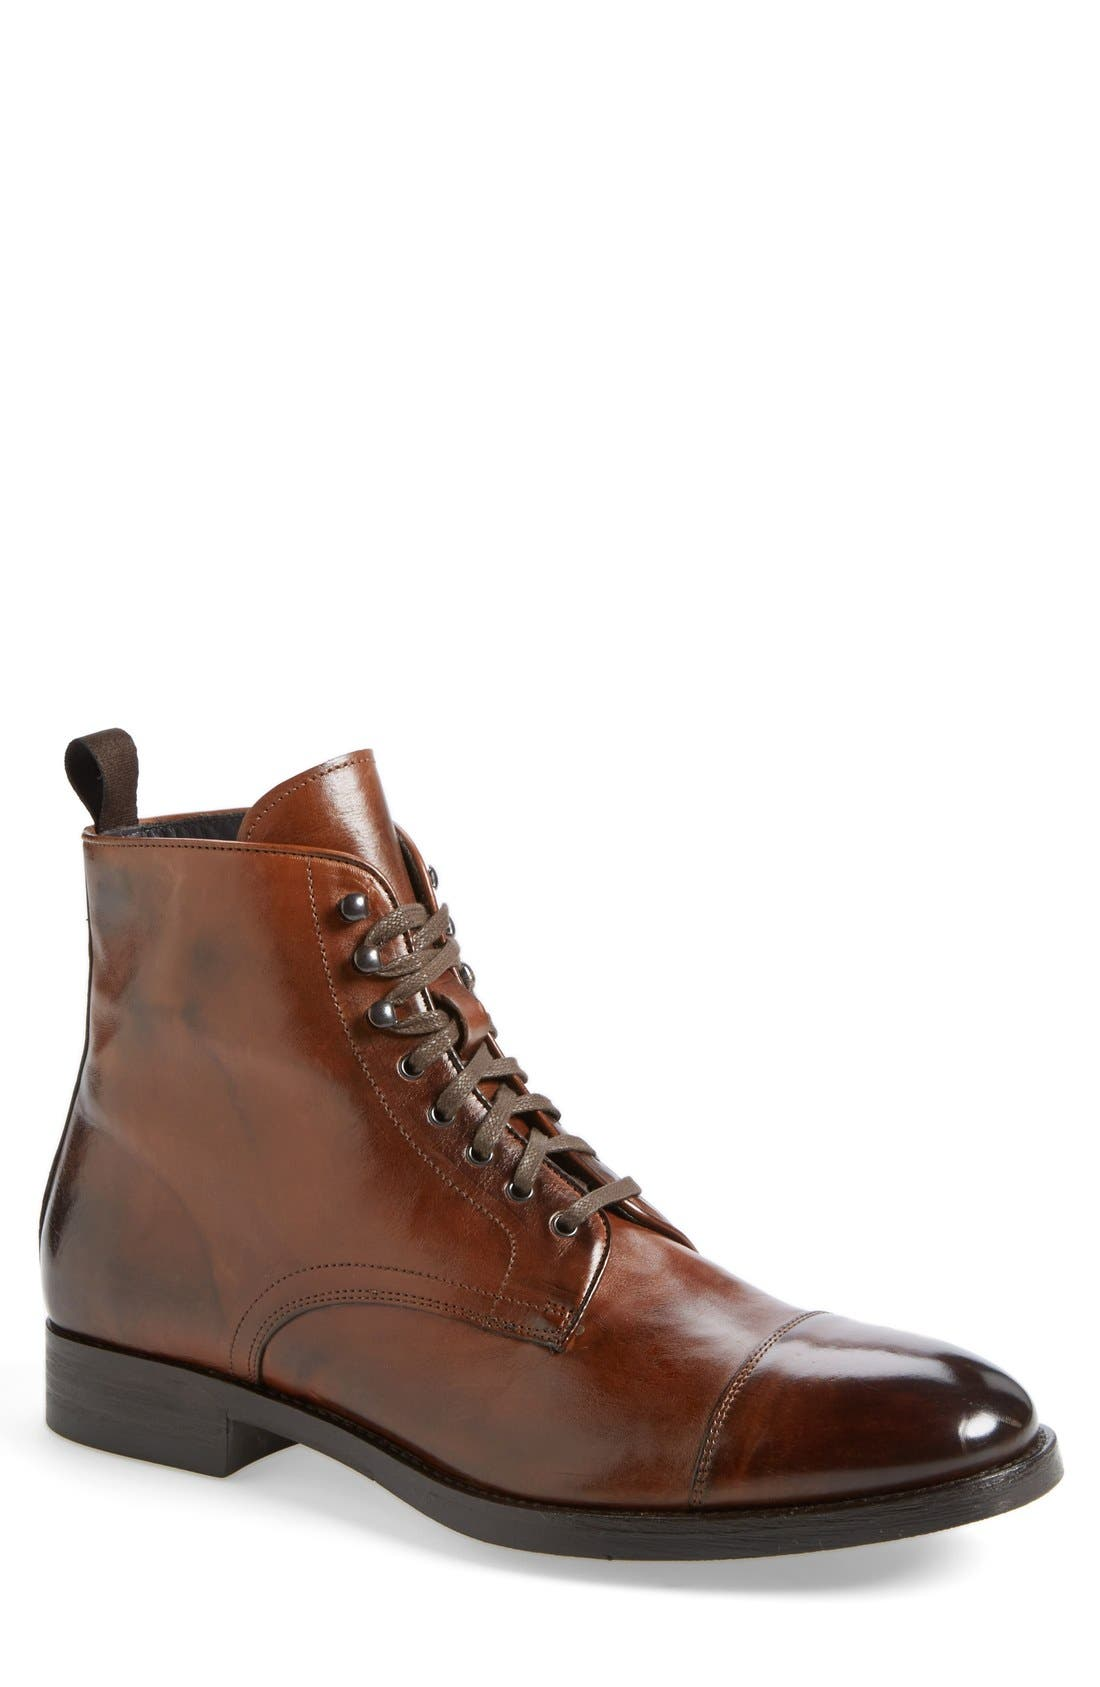 Alternate Image 1 Selected - To Boot New York 'Stallworth' Cap Toe Boot (Men)